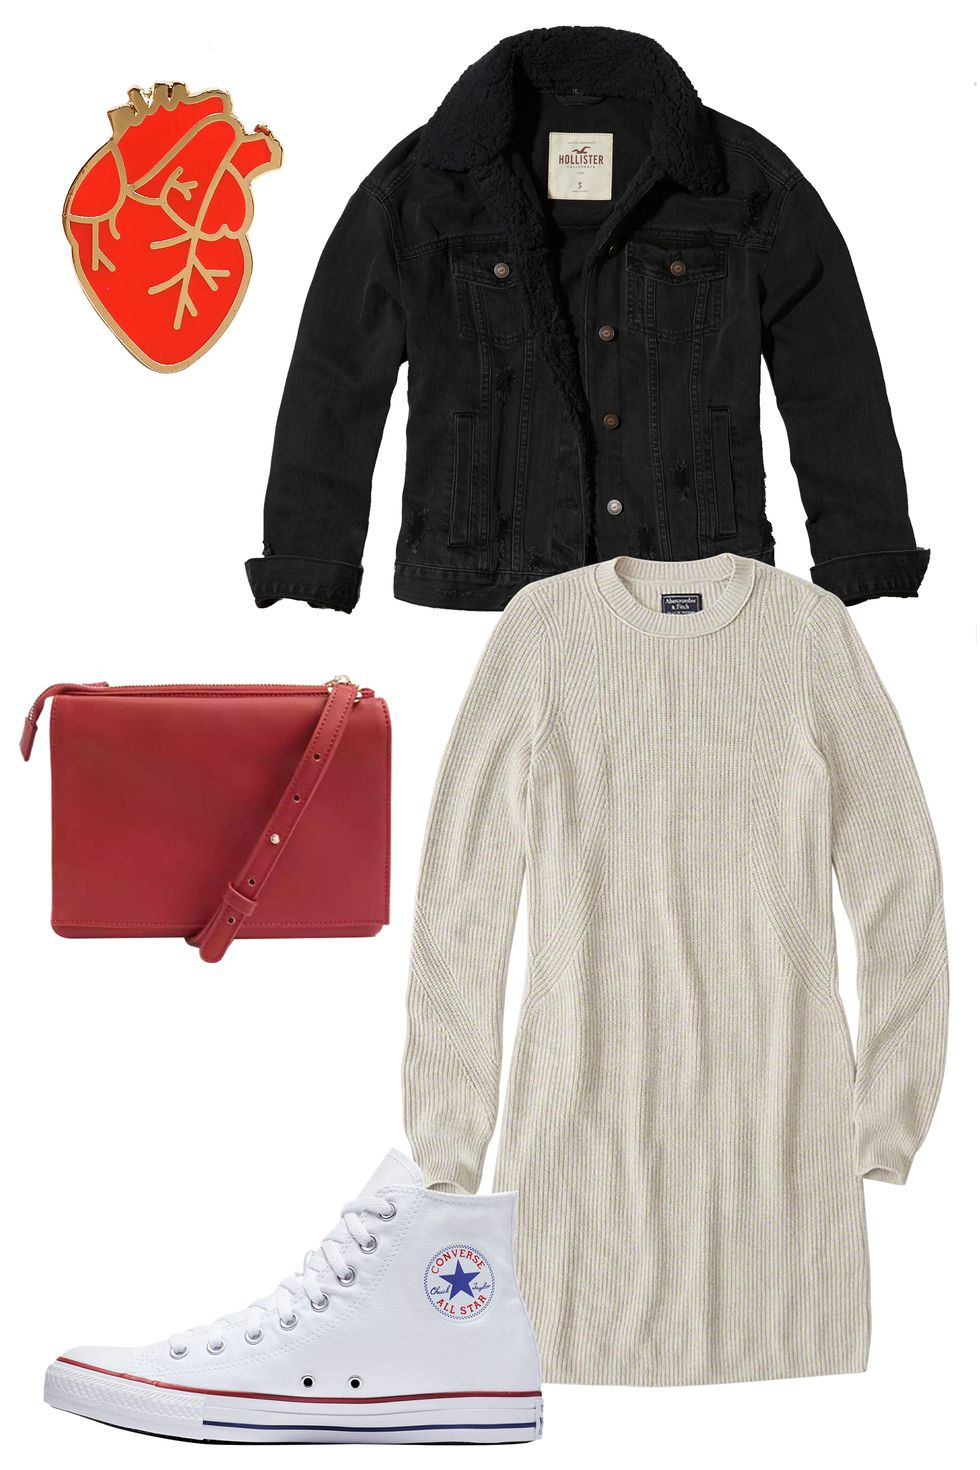 white-dress-sweater-black-jacket-jean-red-bag-white-shoe-sneakers-converse-howtowear-valentinesday-outfit-fall-winter-lunch.jpg